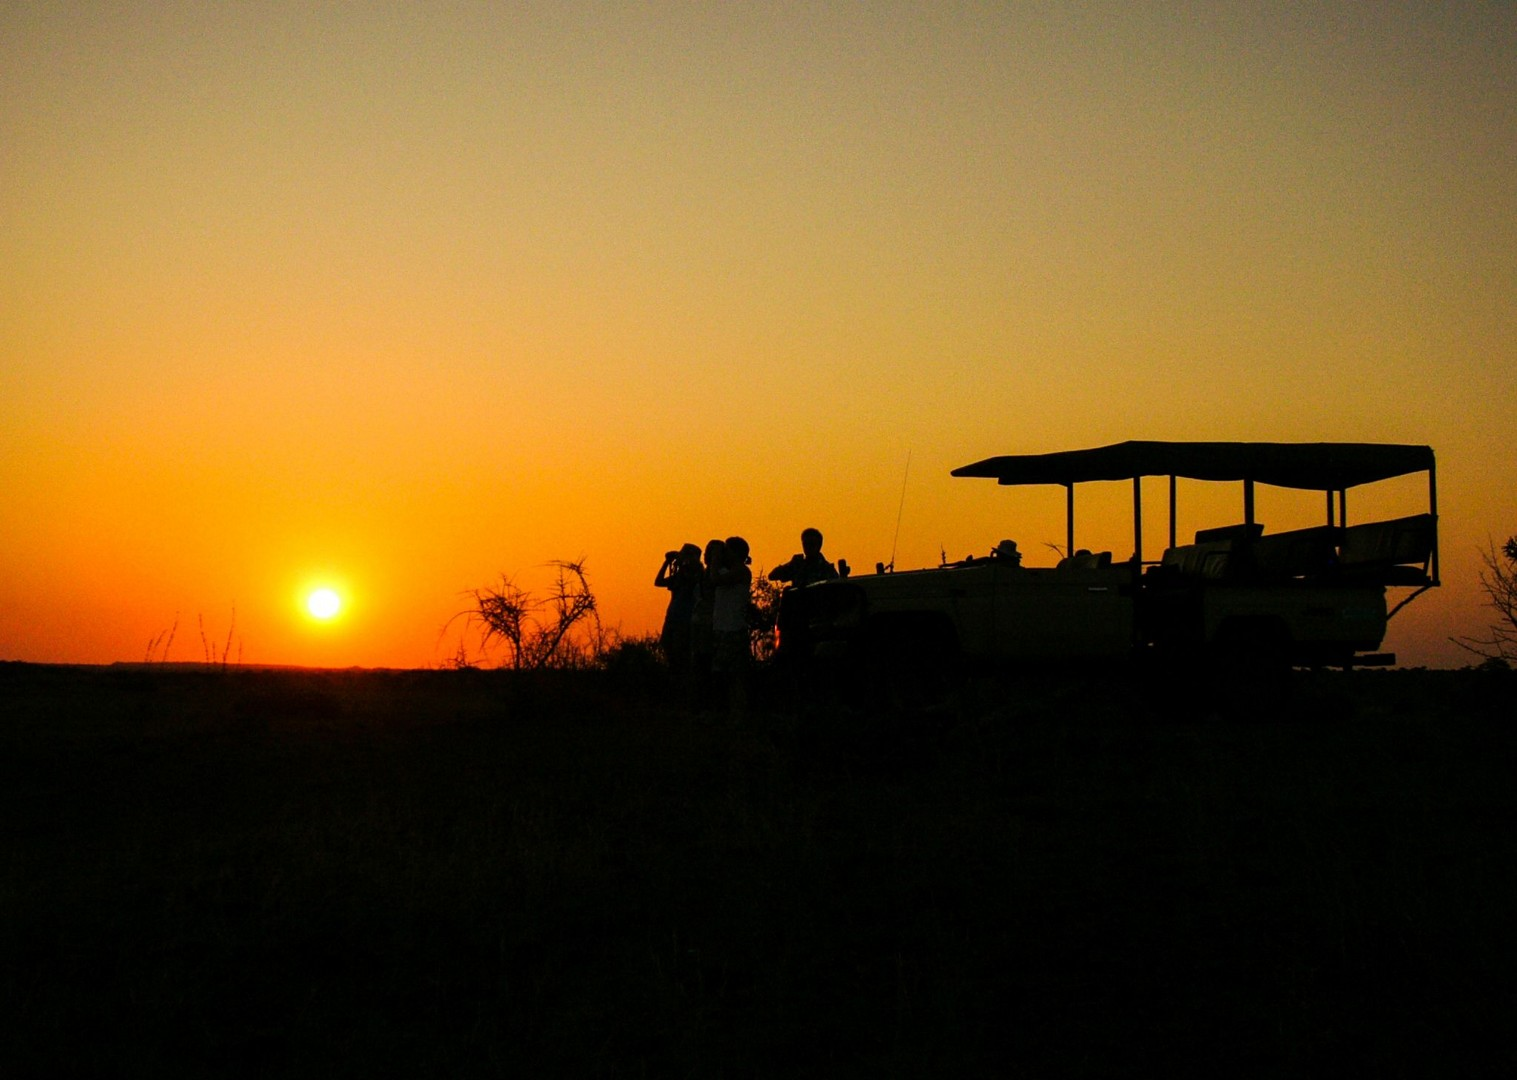 sunset-south-africa-and-botswana-trip-mountain-bike-holiday.jpg - NEW! South Africa and Botswana - Mountain Biking